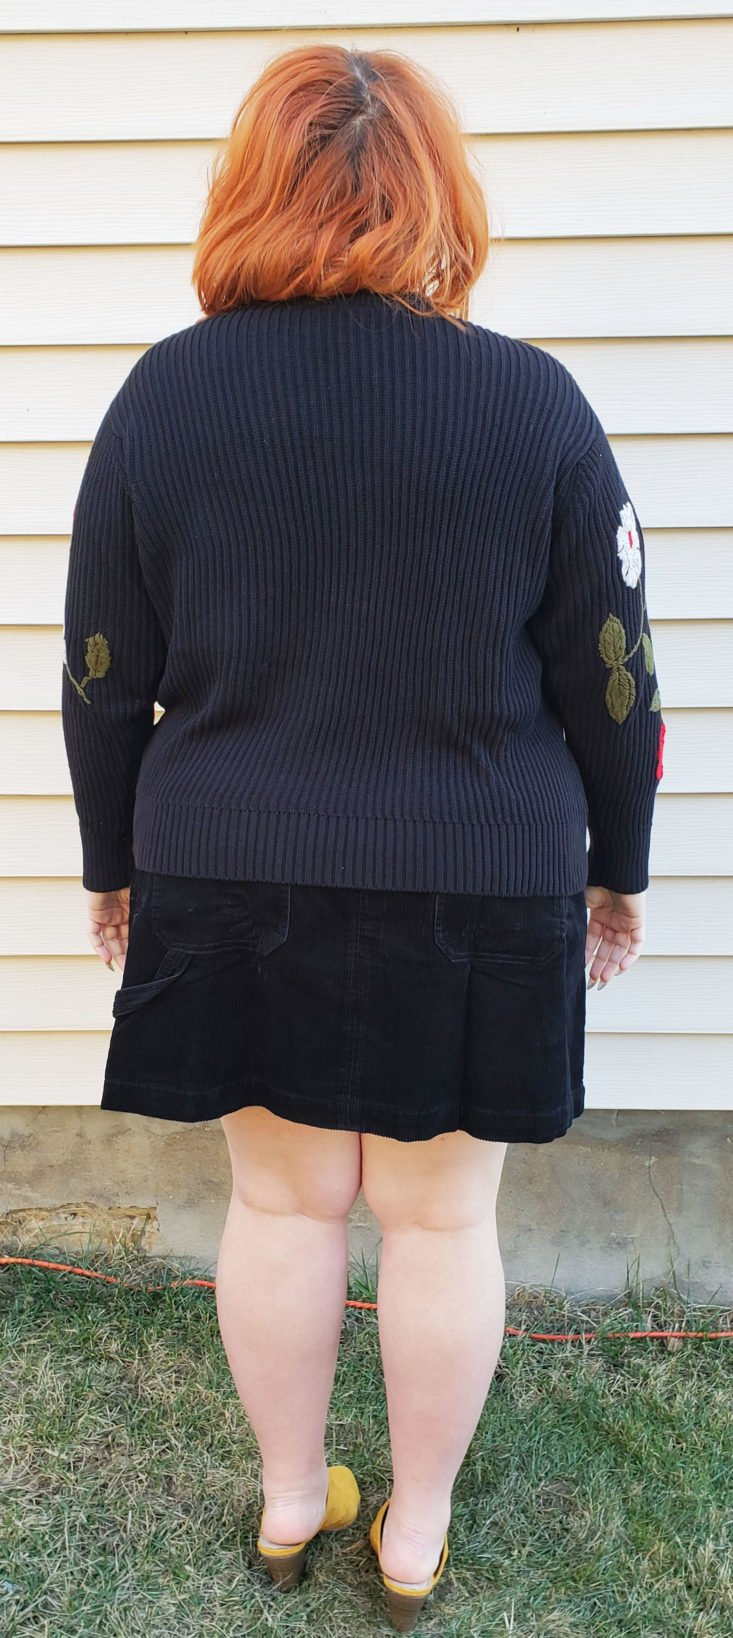 Trunk Club Plus Size Subscription Box Review December 2018 - Embroidered Sleeve Cotton Sweater by Lucky Brand Size 2x Pose 4 Back